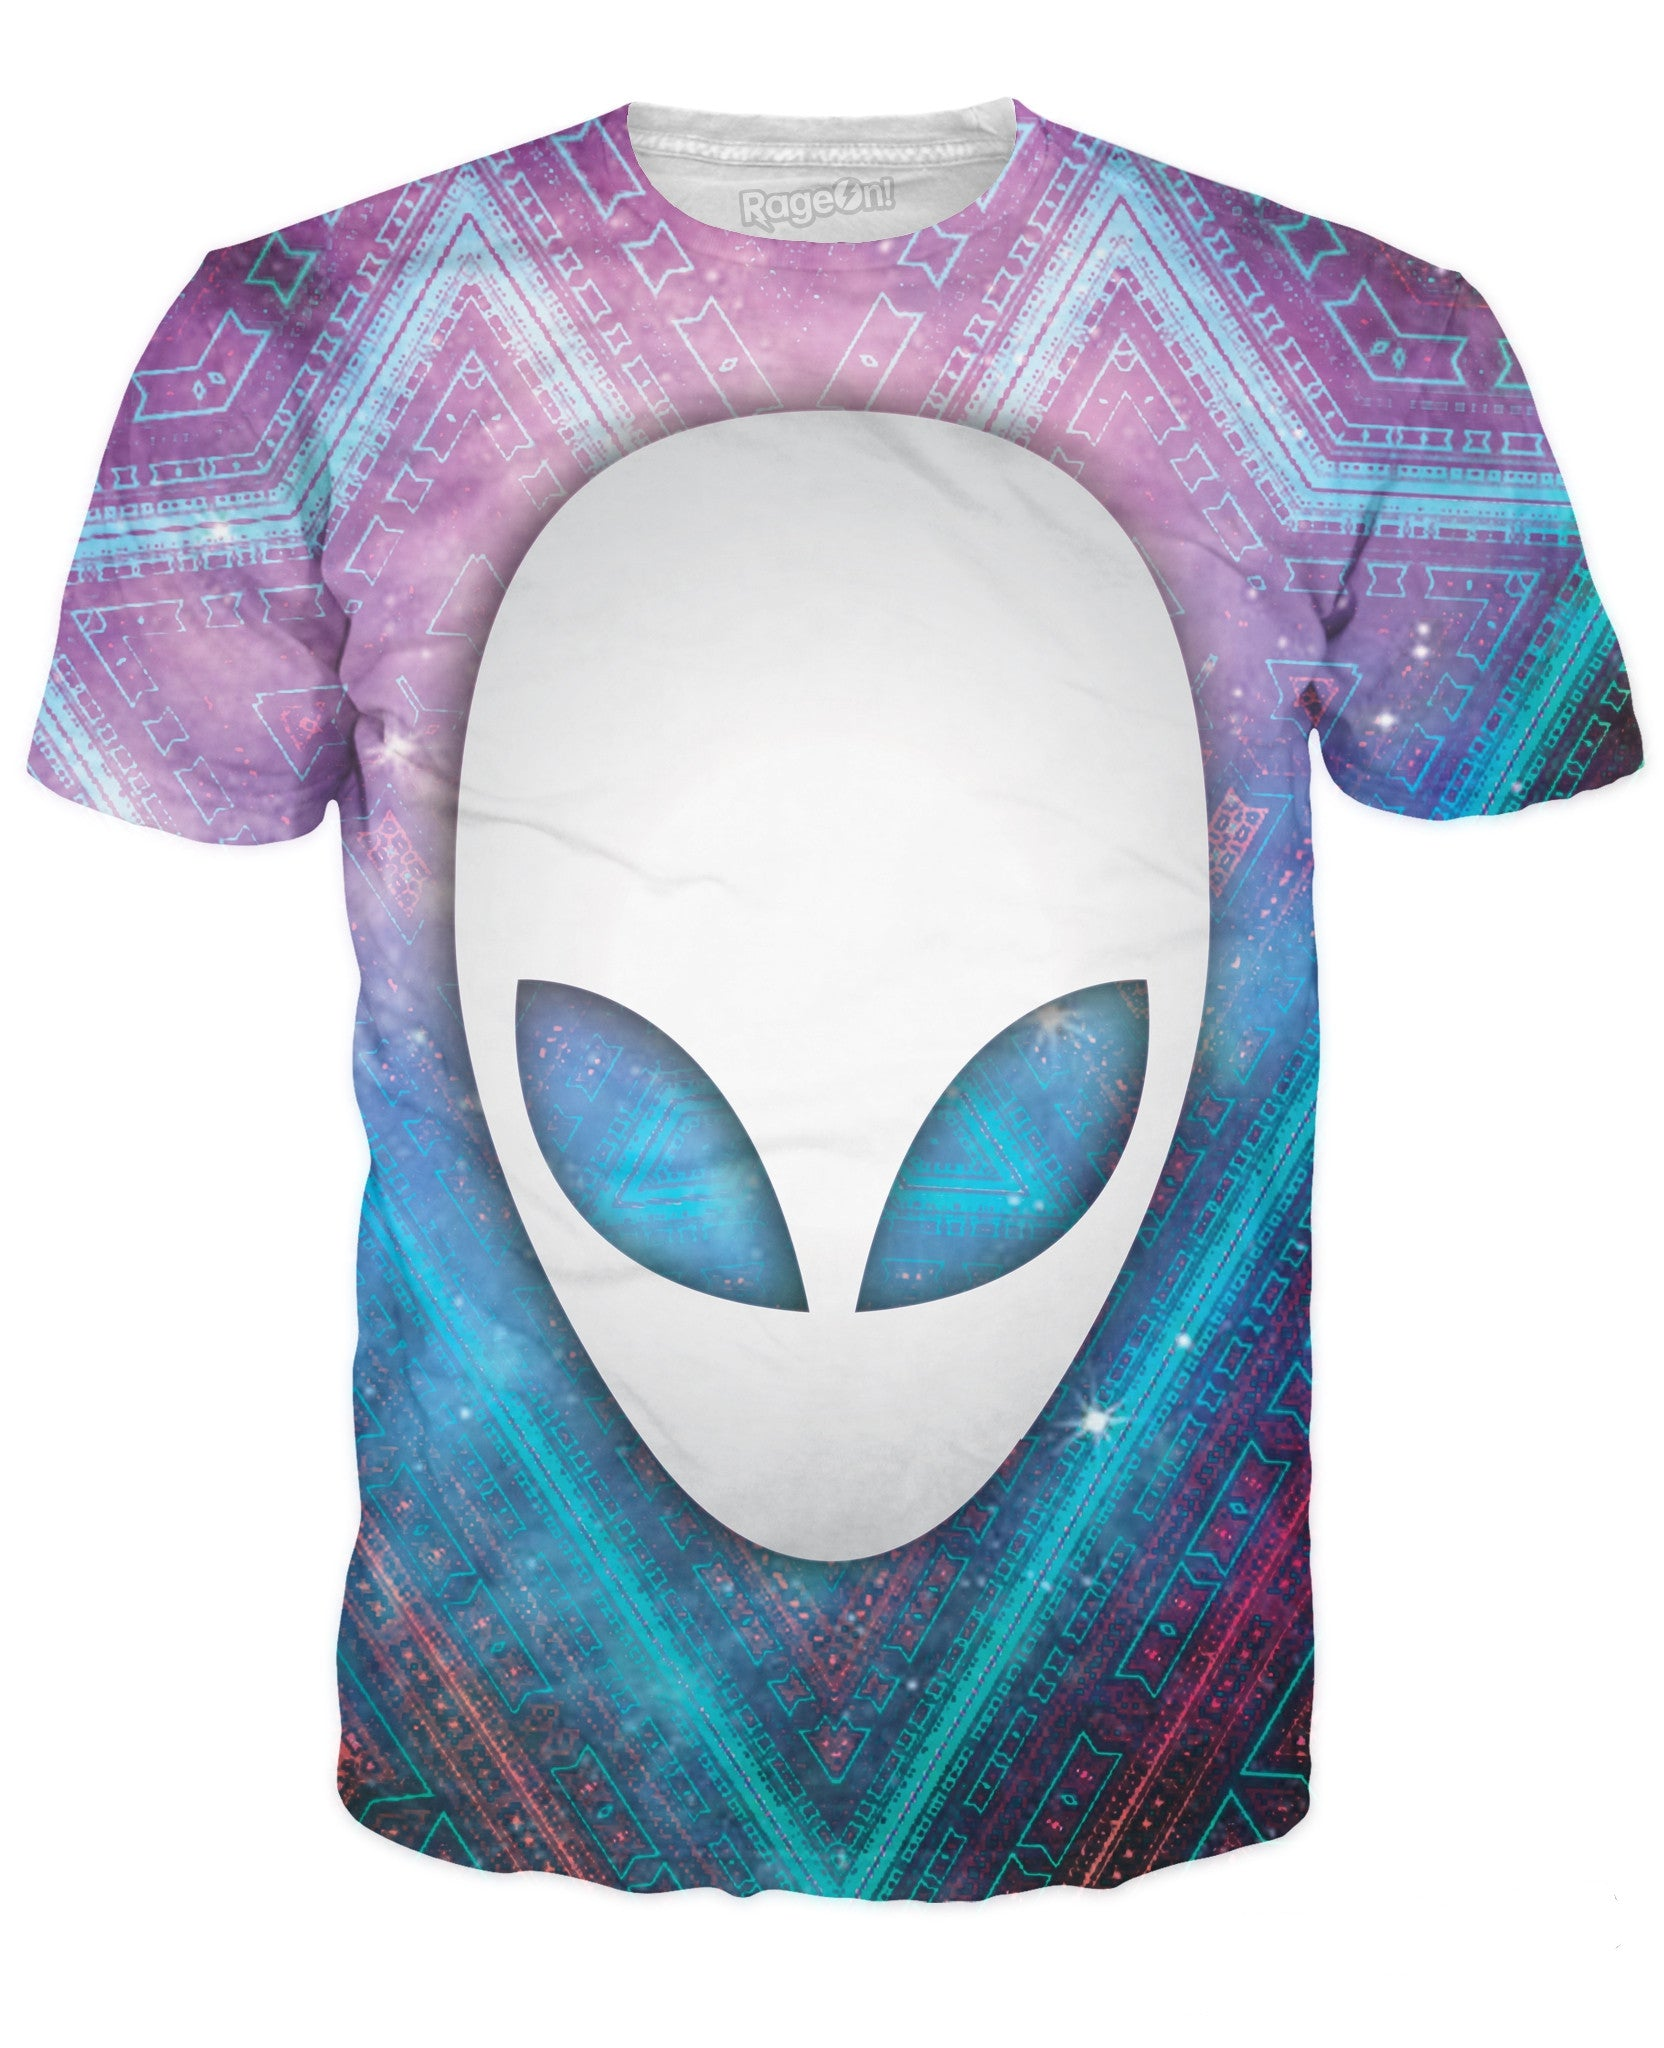 Alien Head T-Shirt - TShirtsRUS.co